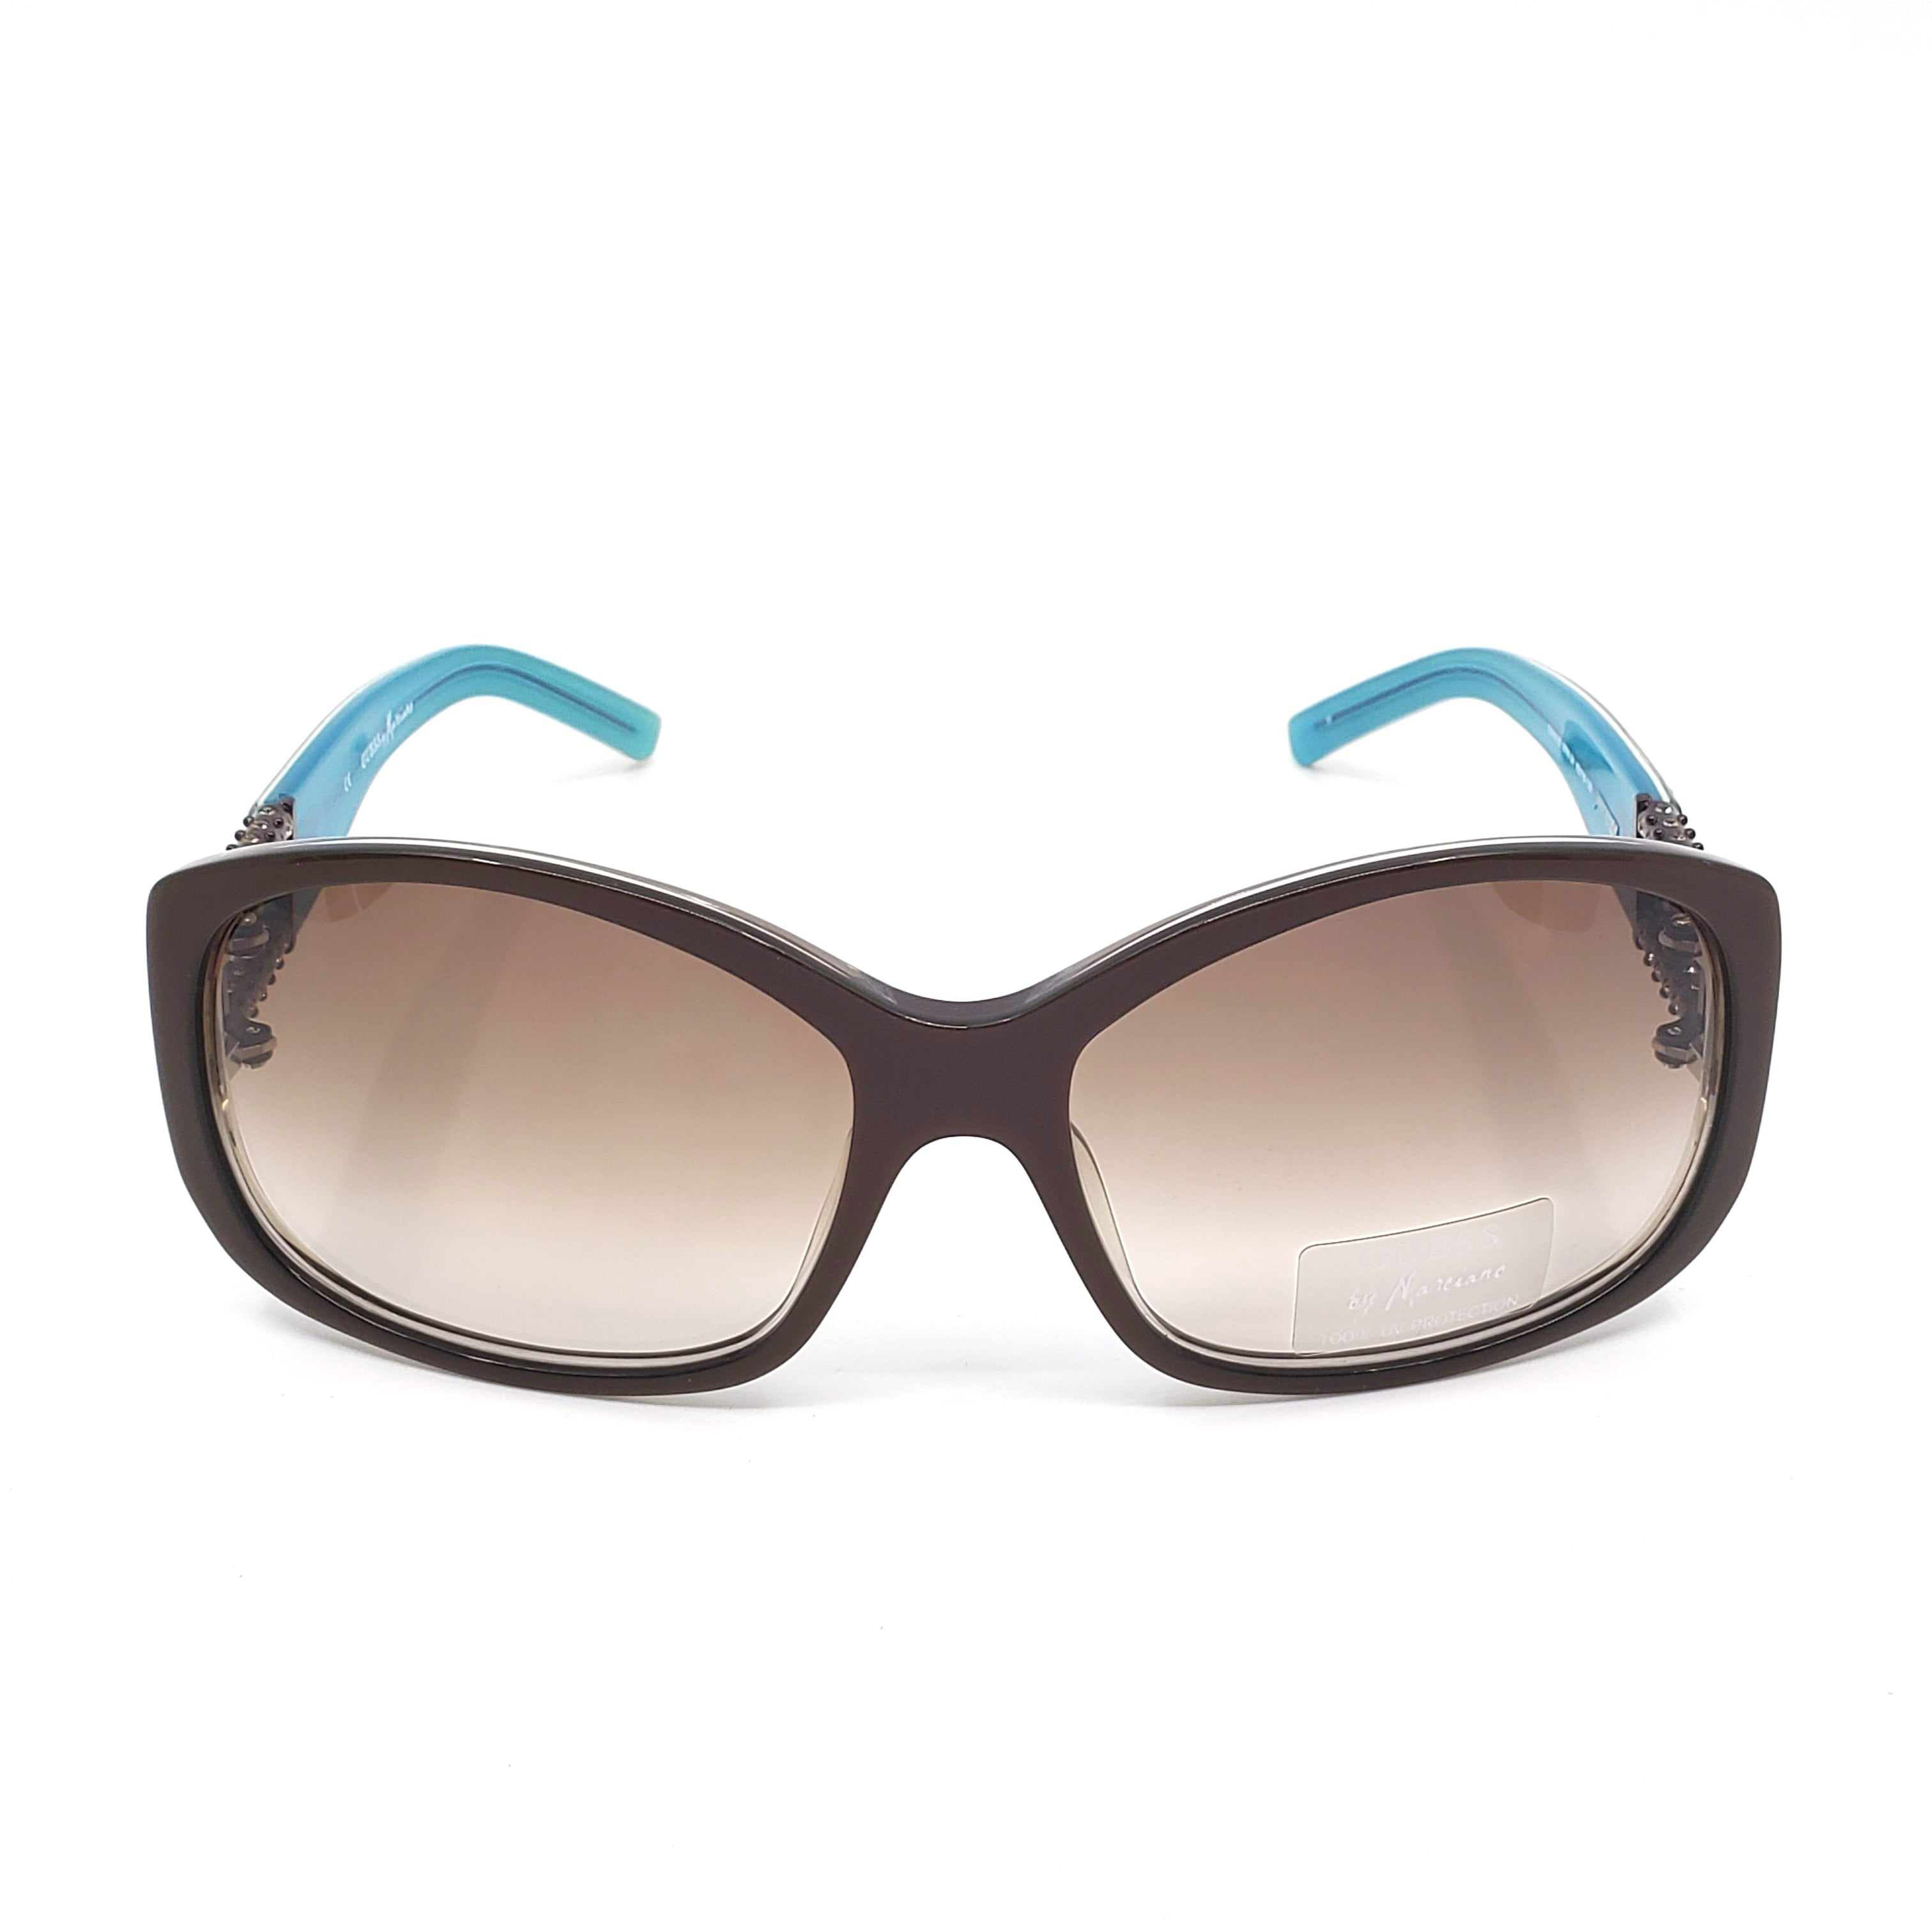 Guess by Marciano Sunglasses - GM610